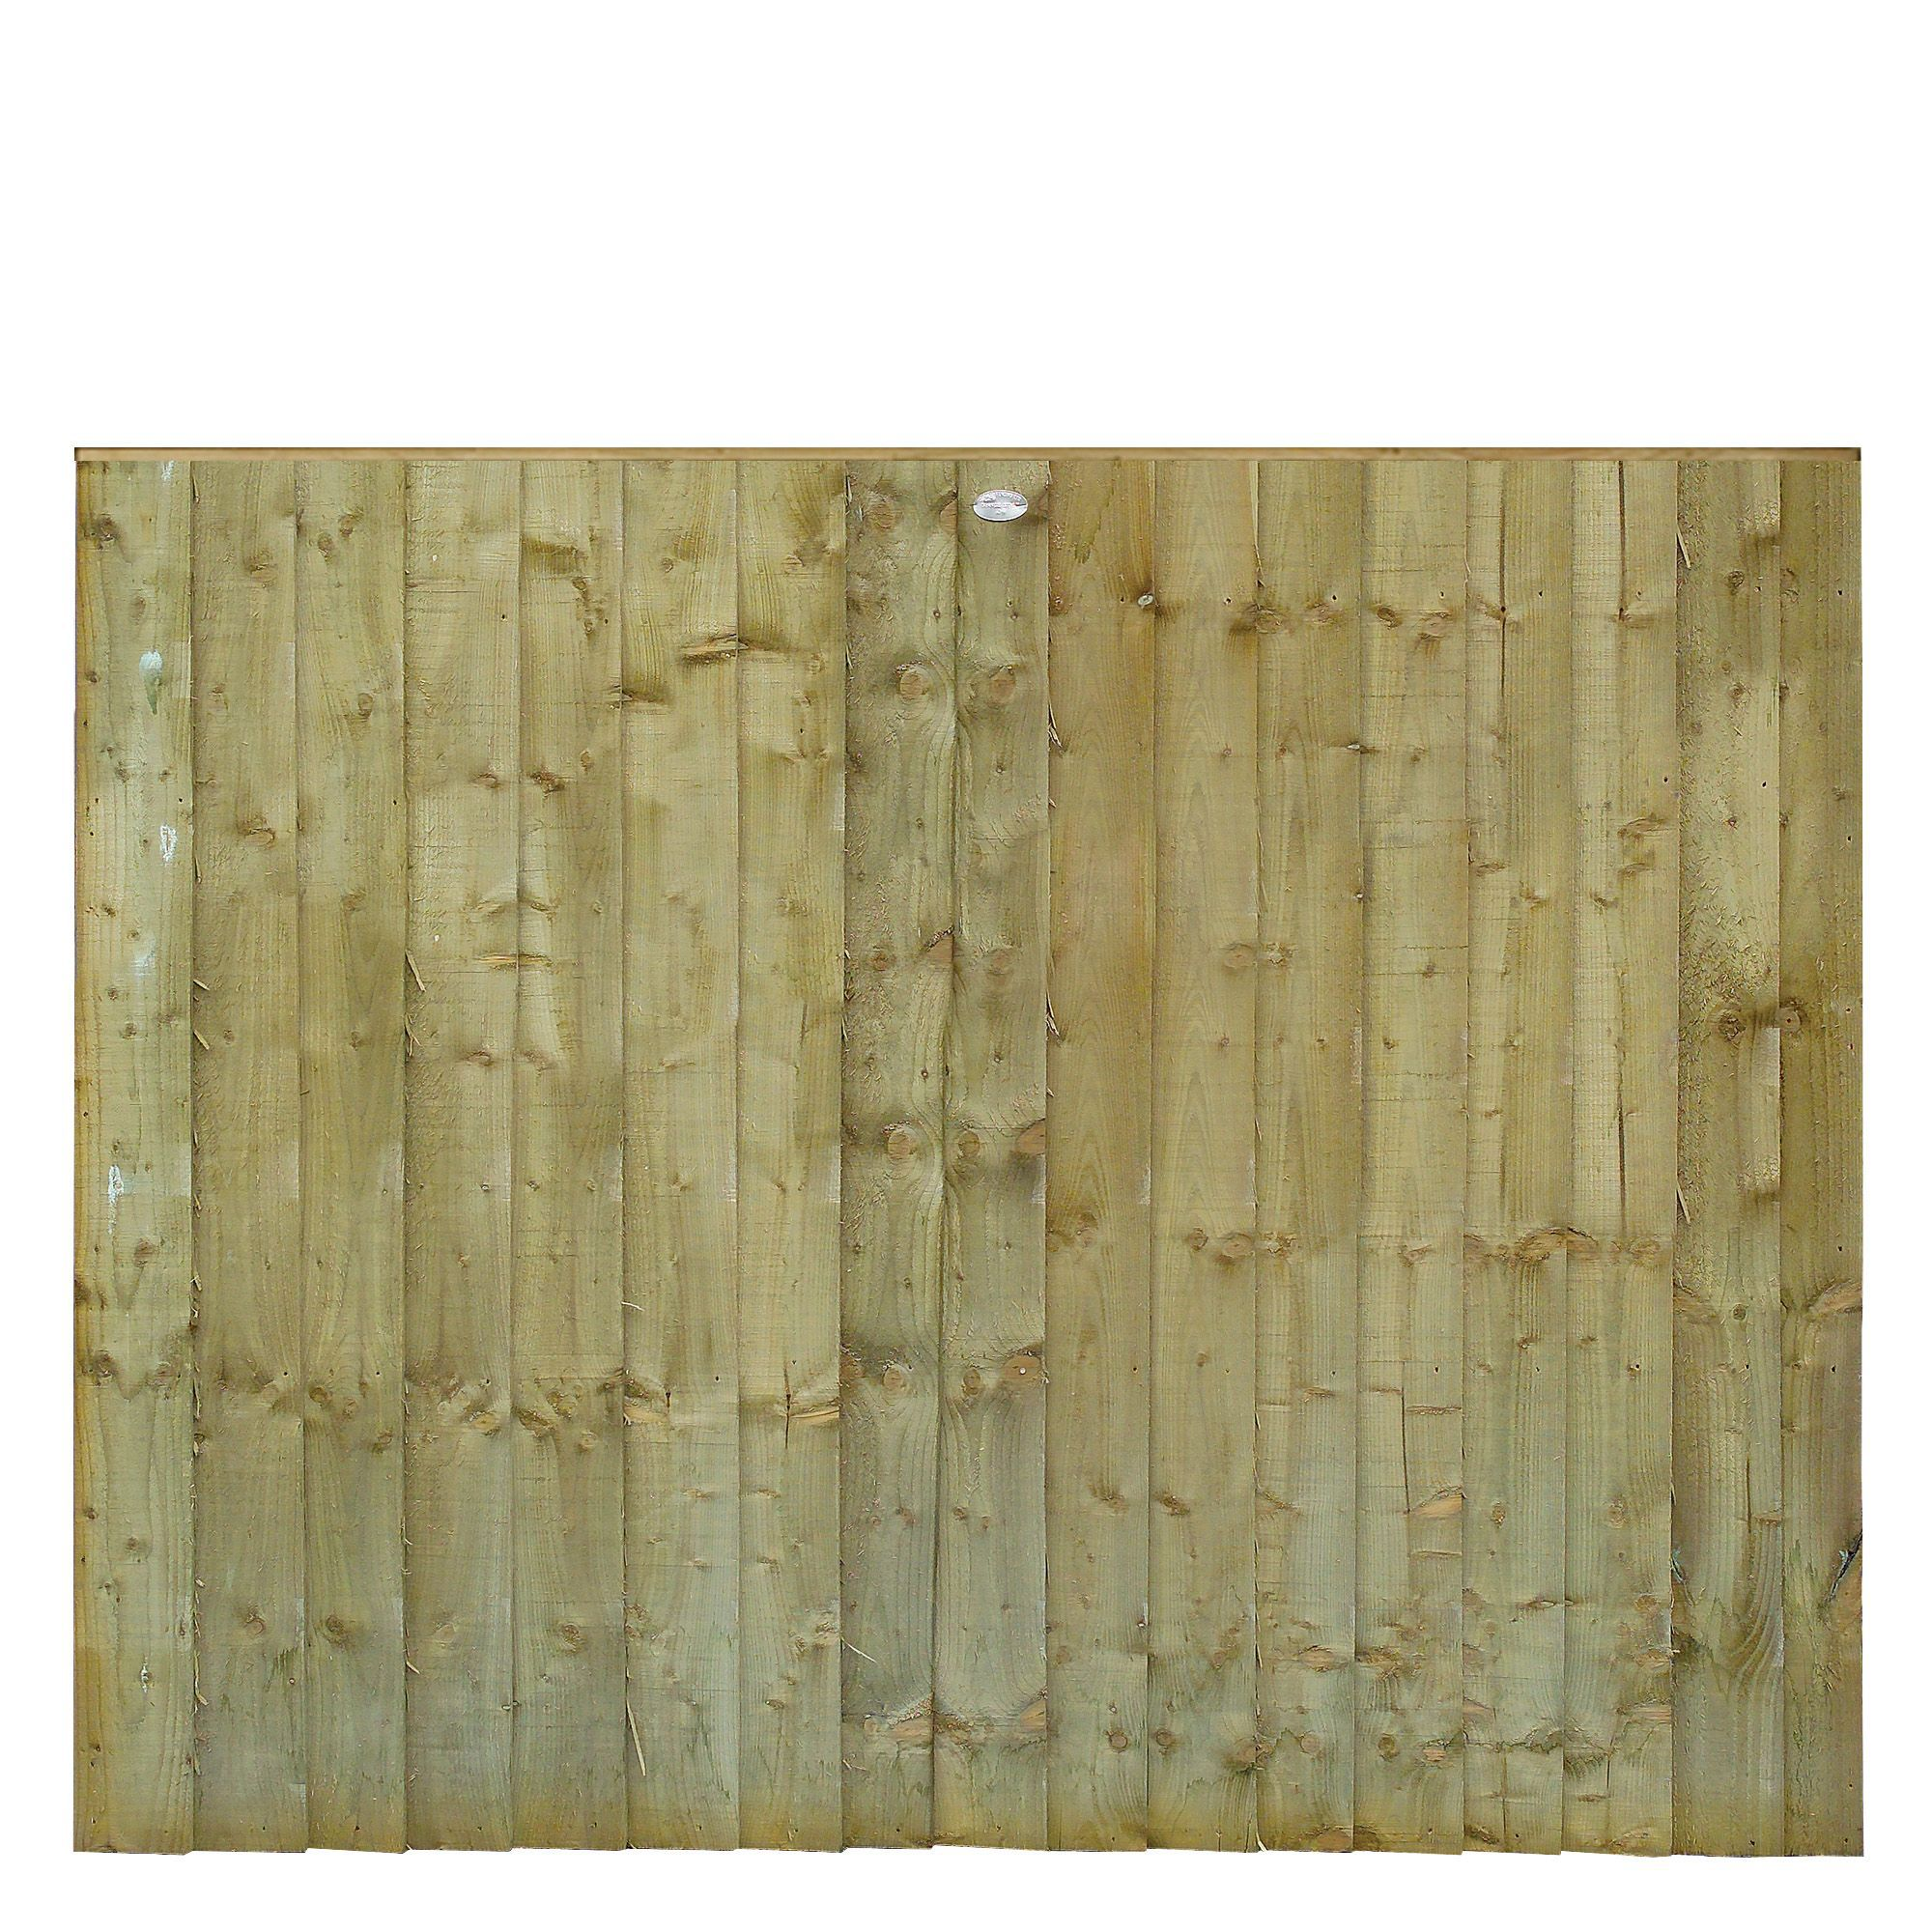 Grange Professional Feather Edge Overlap Vertical Slat Fence Panel (w)1.83 M (h)1.5m, Pack Of 4